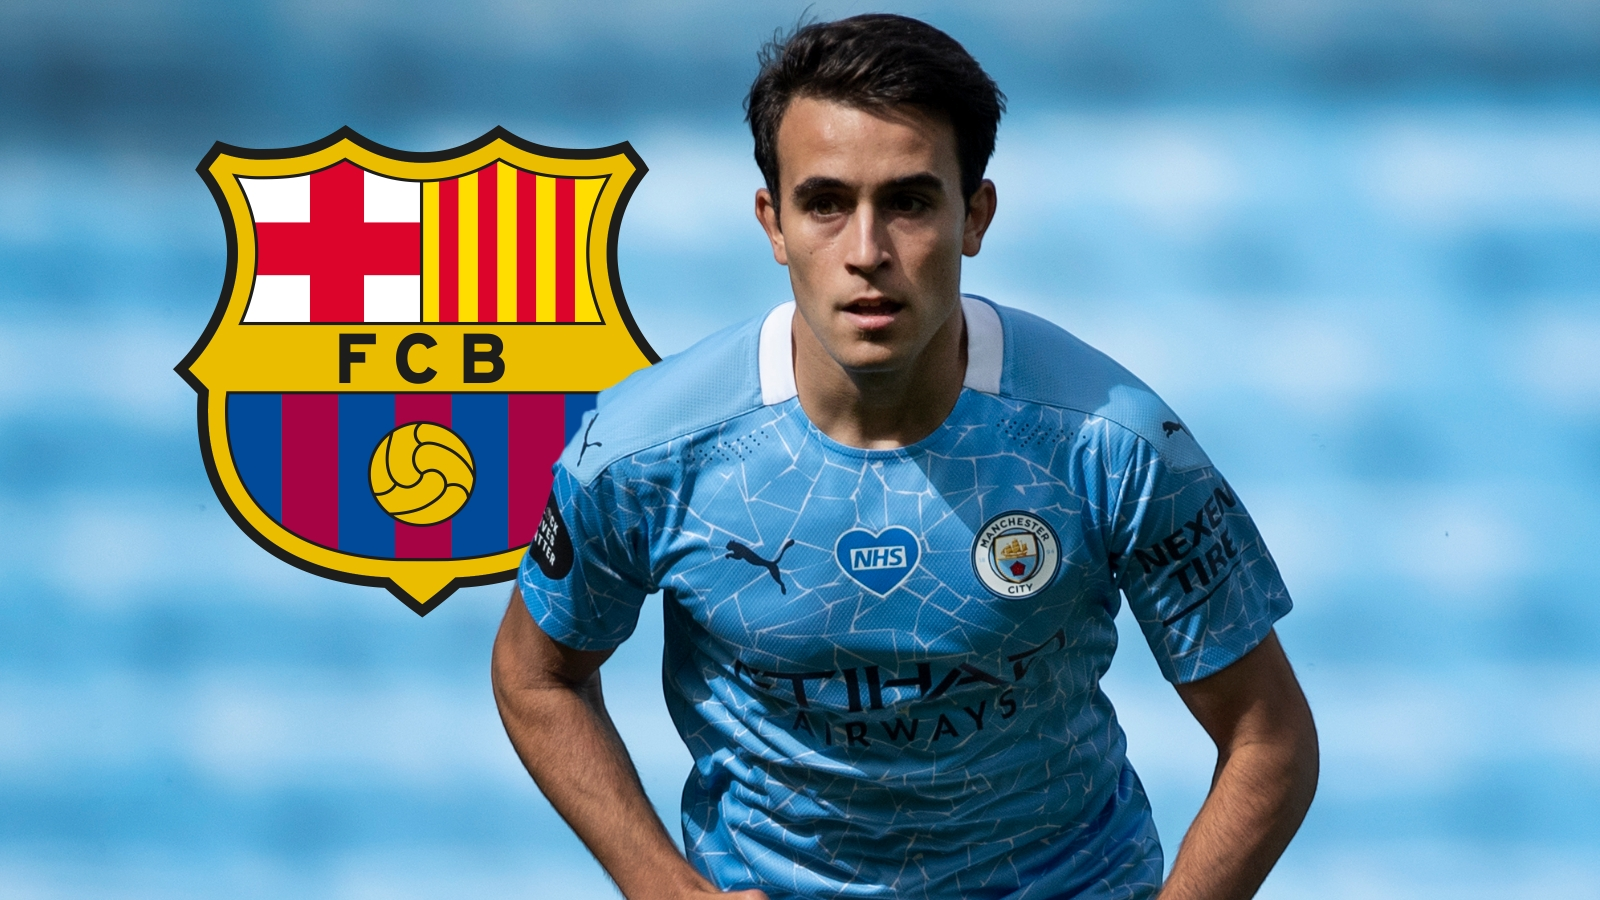 Man City have agreed to sell Garcia to Barcelona for €3m & he'll play for free, says Font